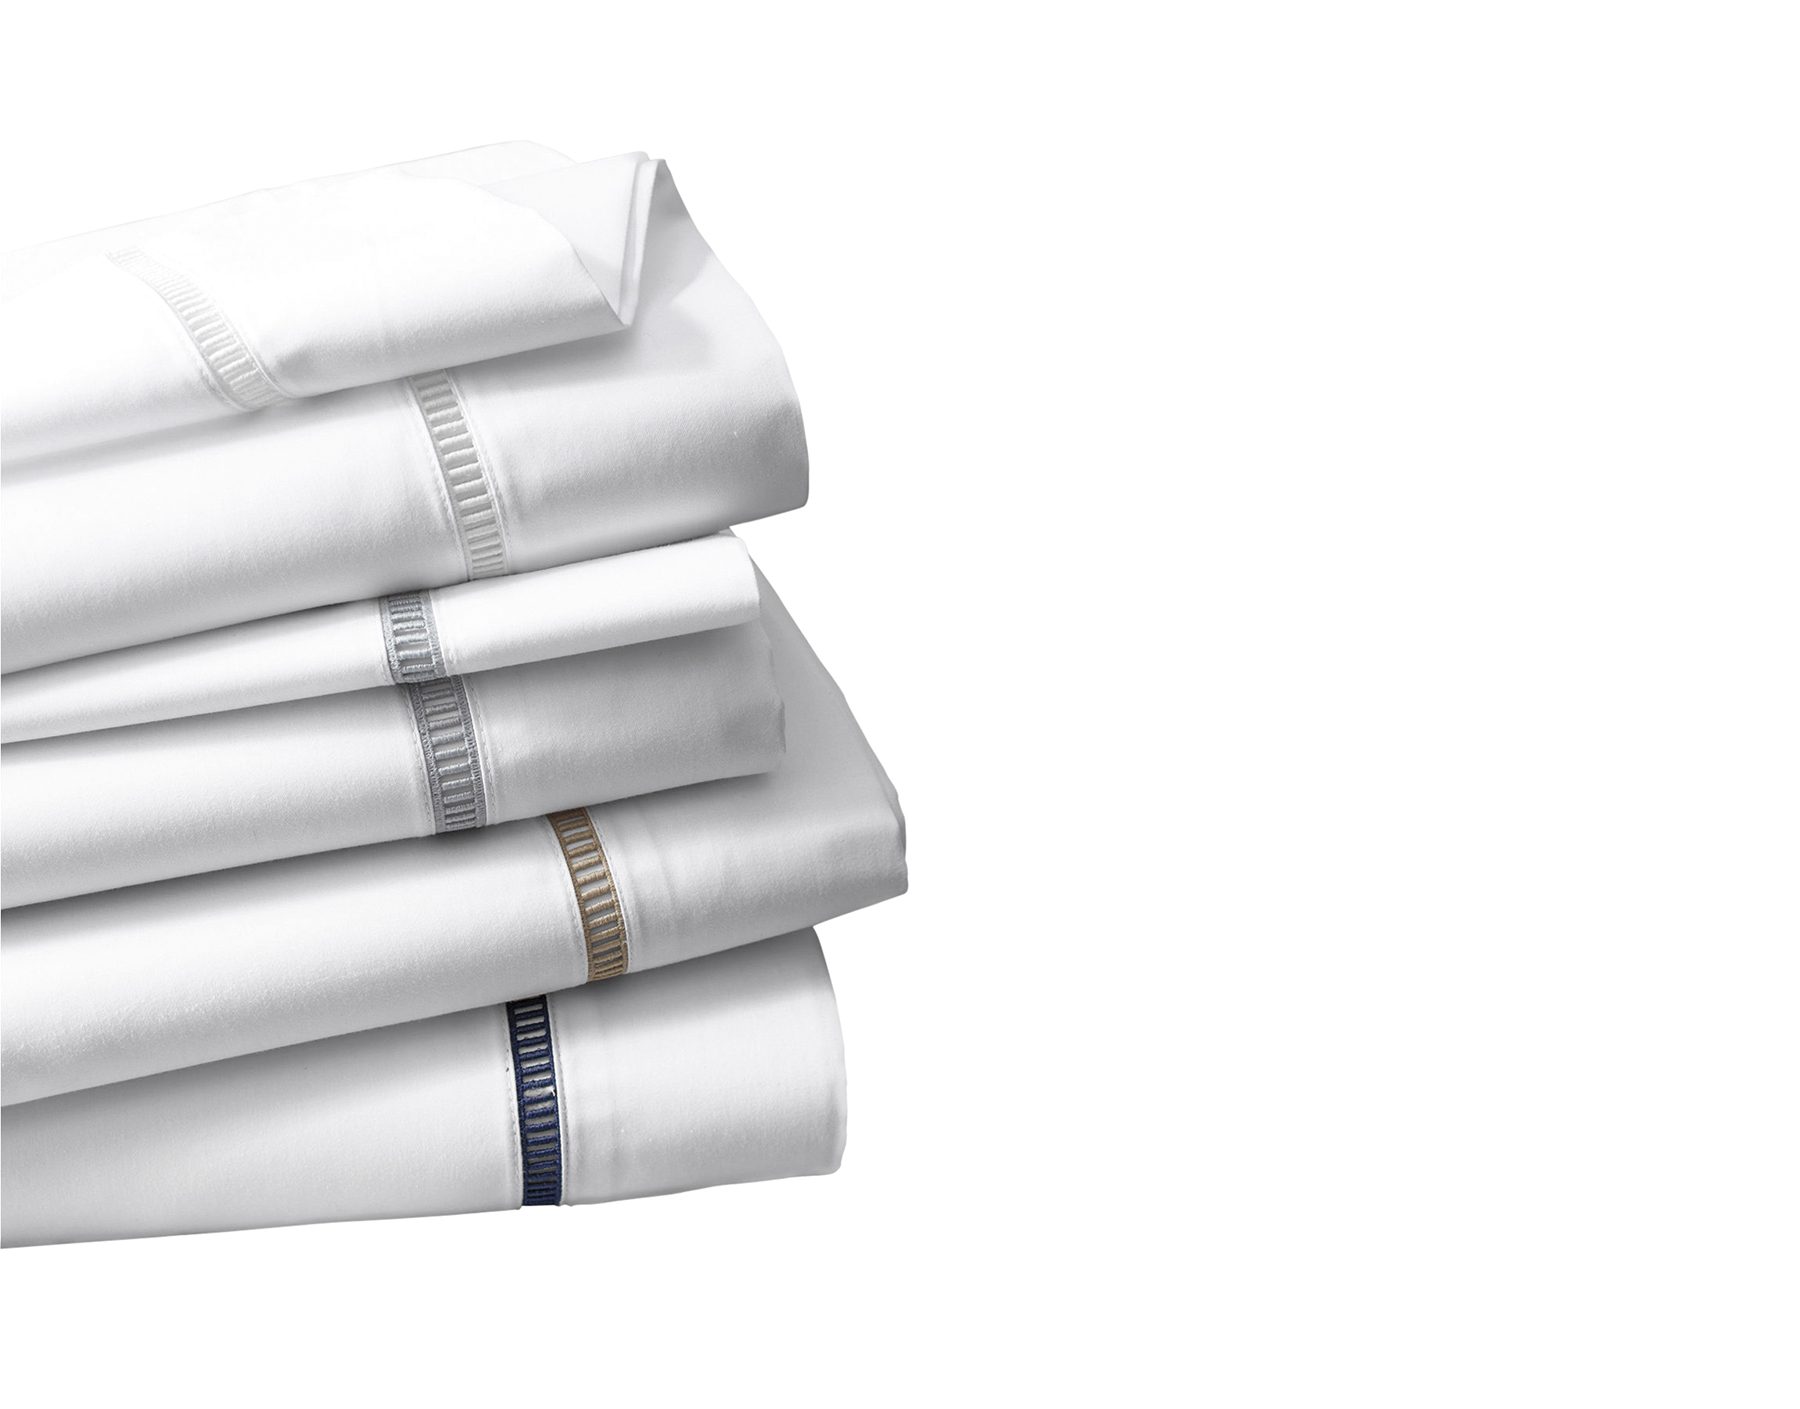 Wrinkle-Resistant Embroidered Sateen Bedding (All The Luxe Sheets Our Editors Love)